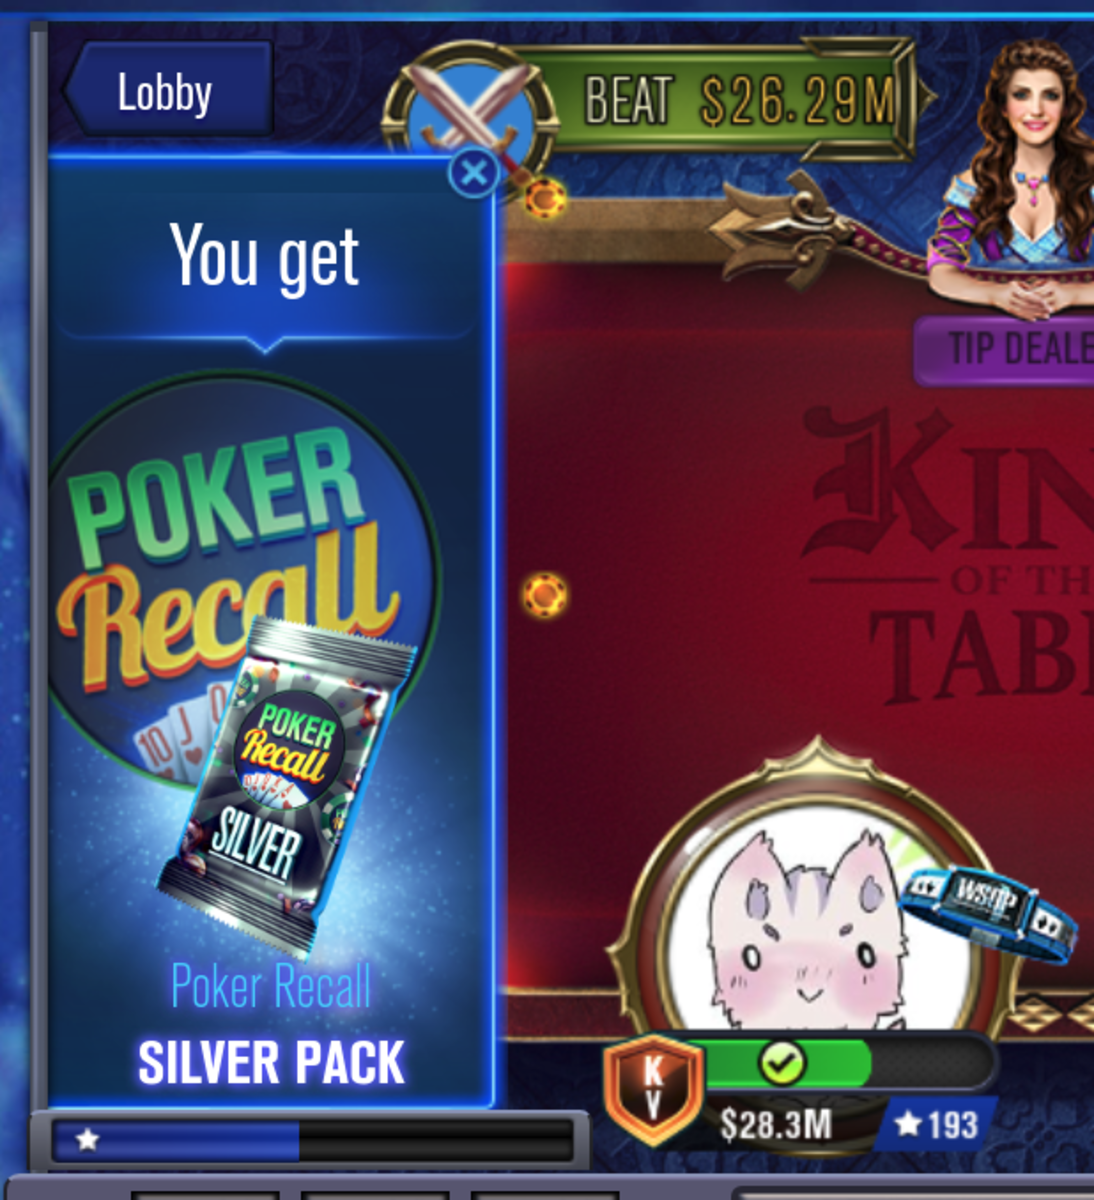 I collected a Poker Recall card pack.